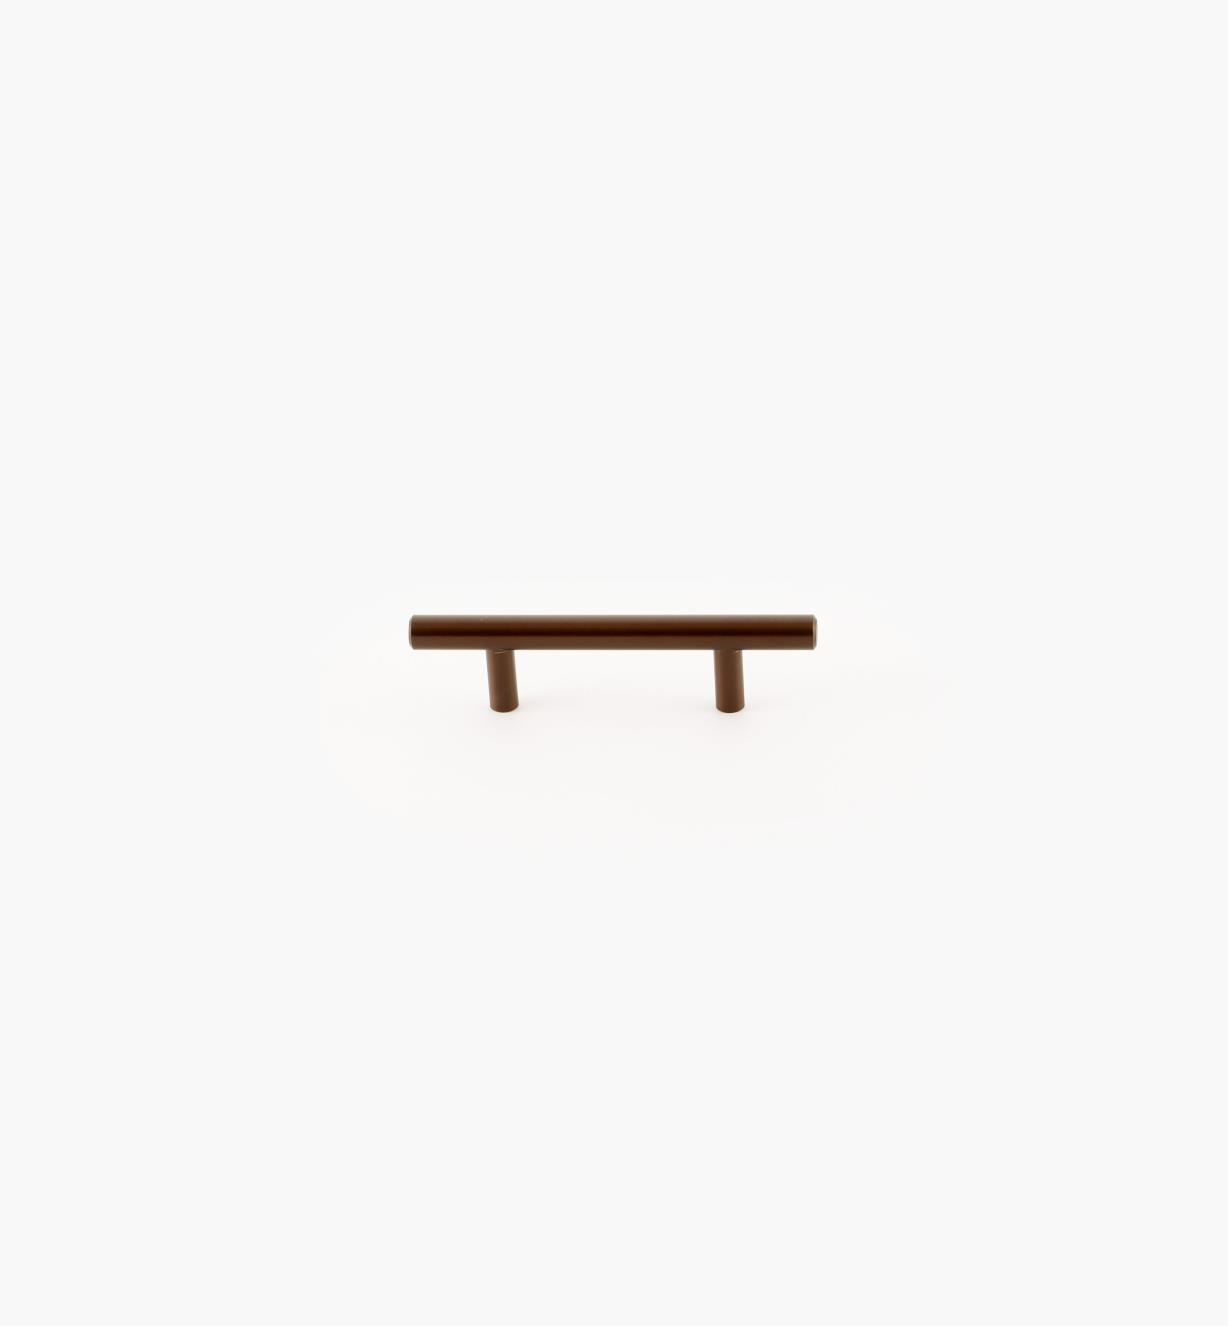 02A1475 - Bar Caramel Bronze 76mm (137mm) Pull, each